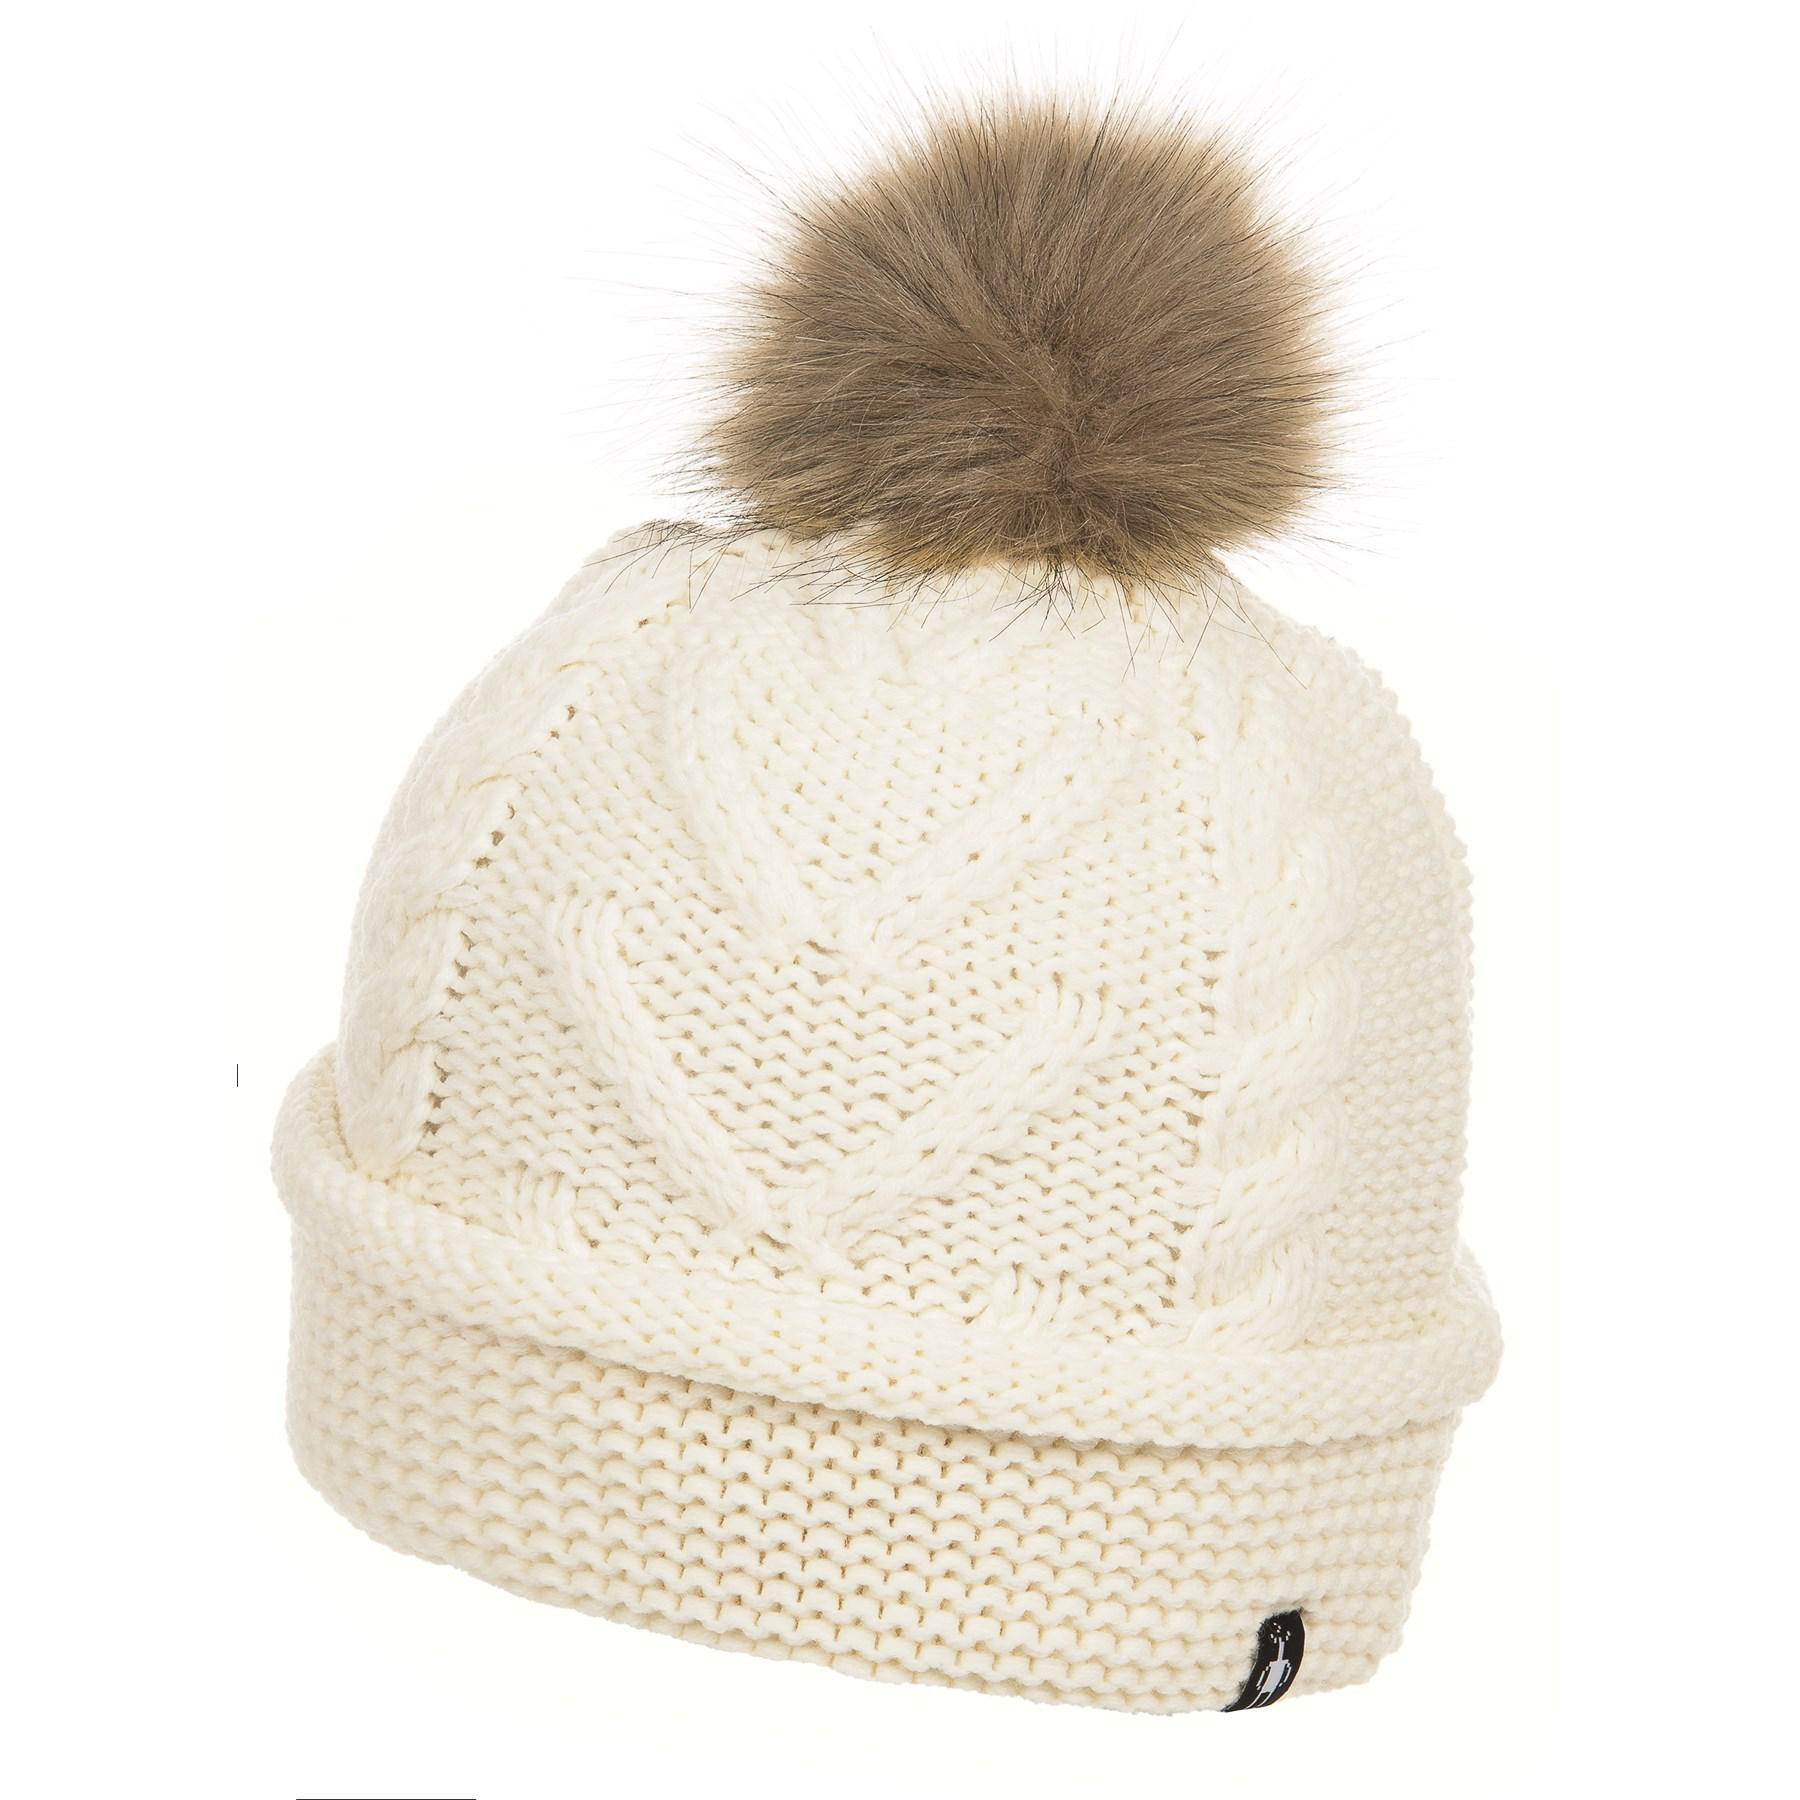 06aac077b83 ... promo code for lyst smartwool marquette beanie in white 0e005 675f2  best price mens ...